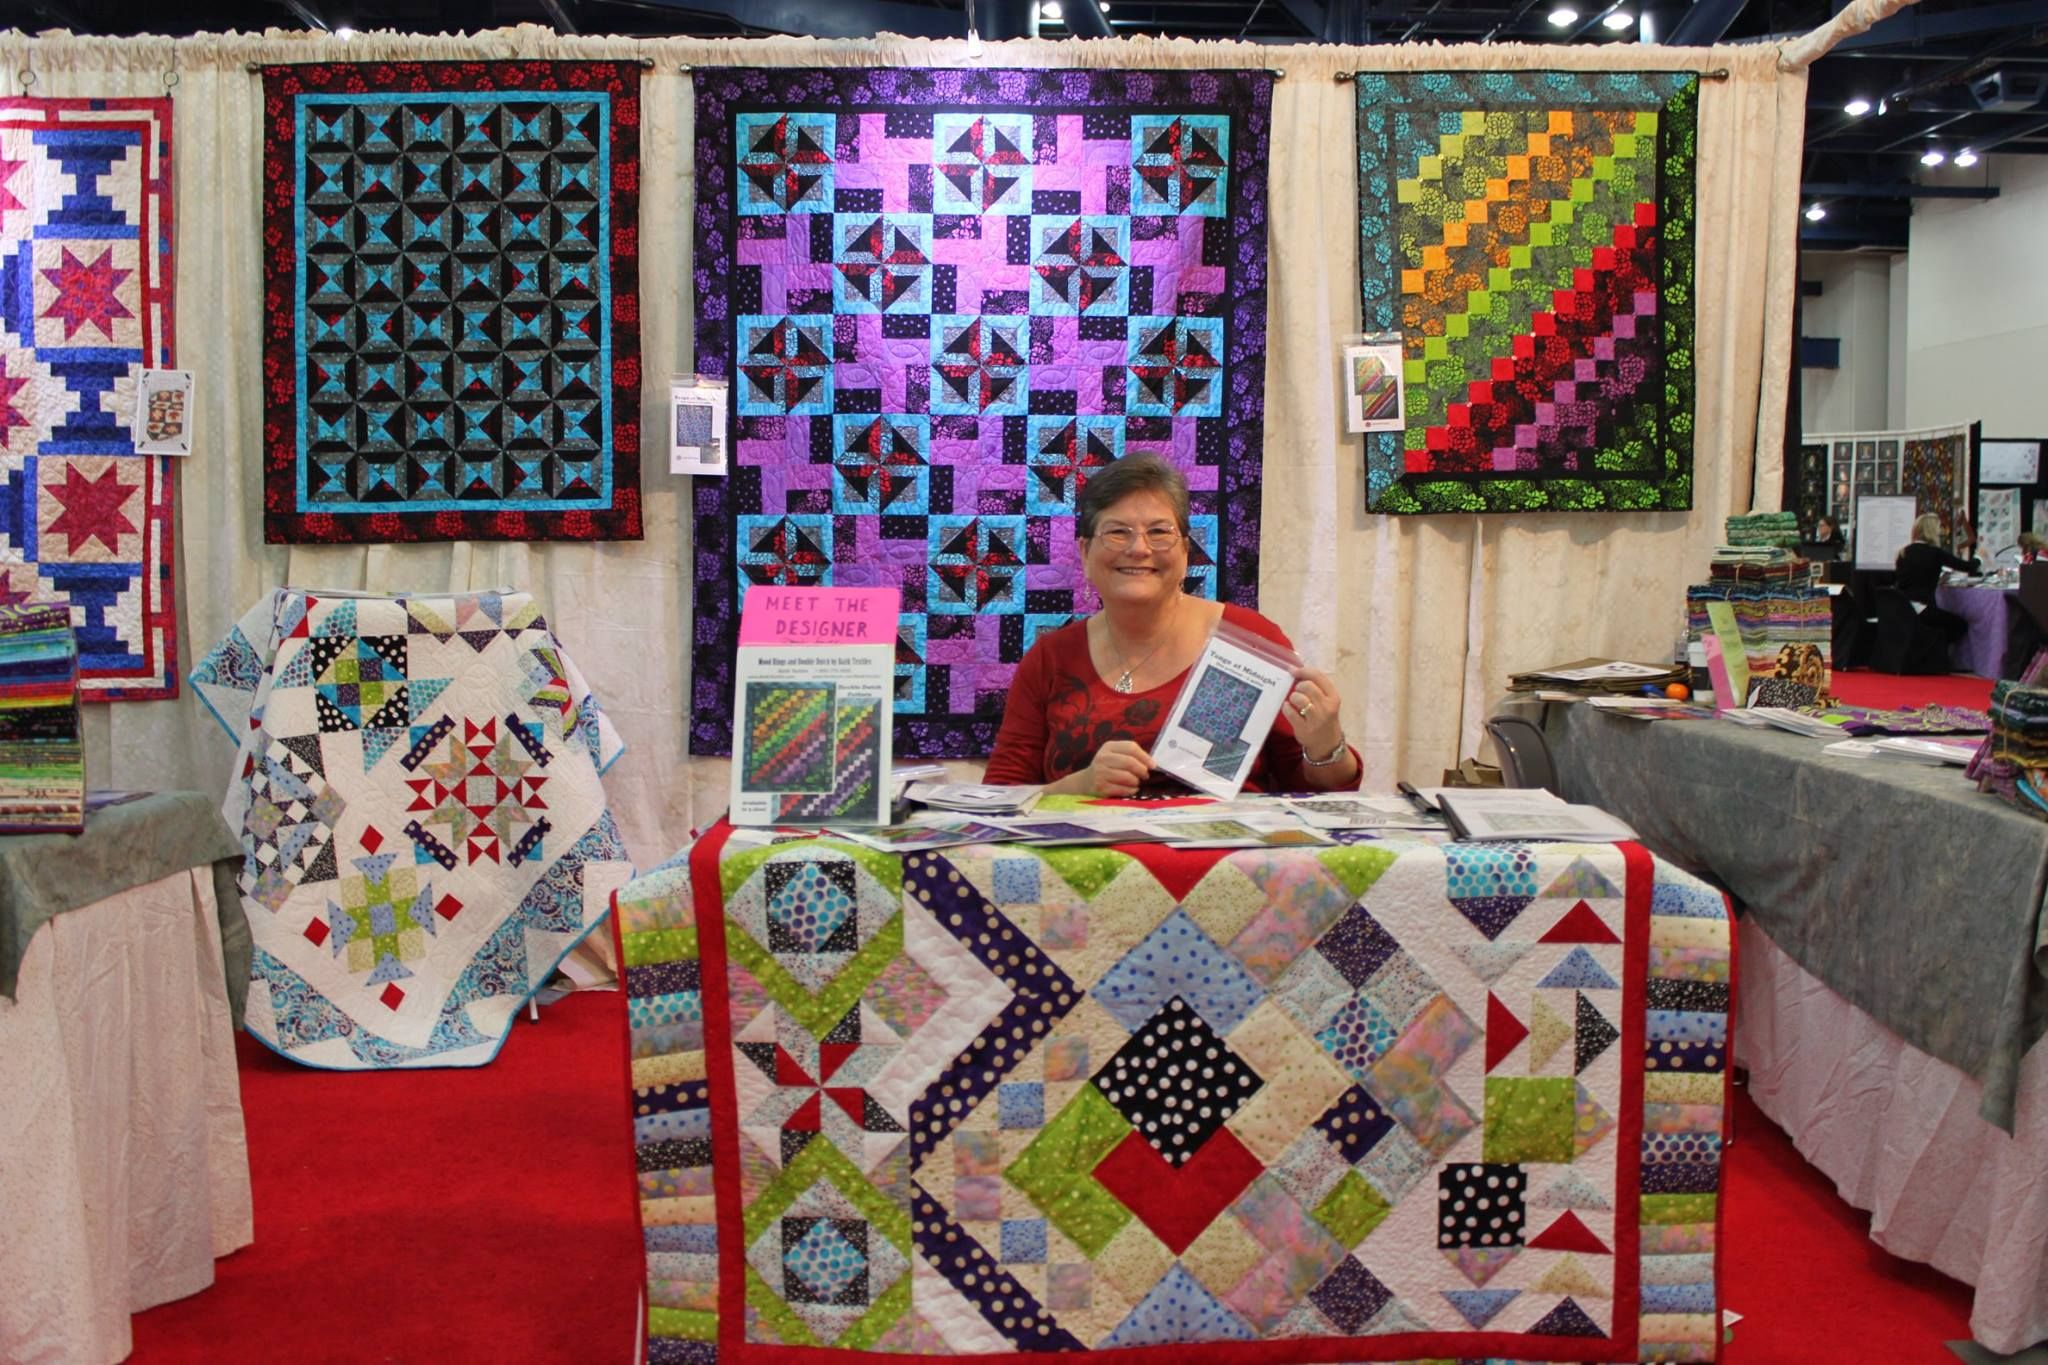 Janice Smith From Inspirations Quilt Shop Janice Smith Designs With